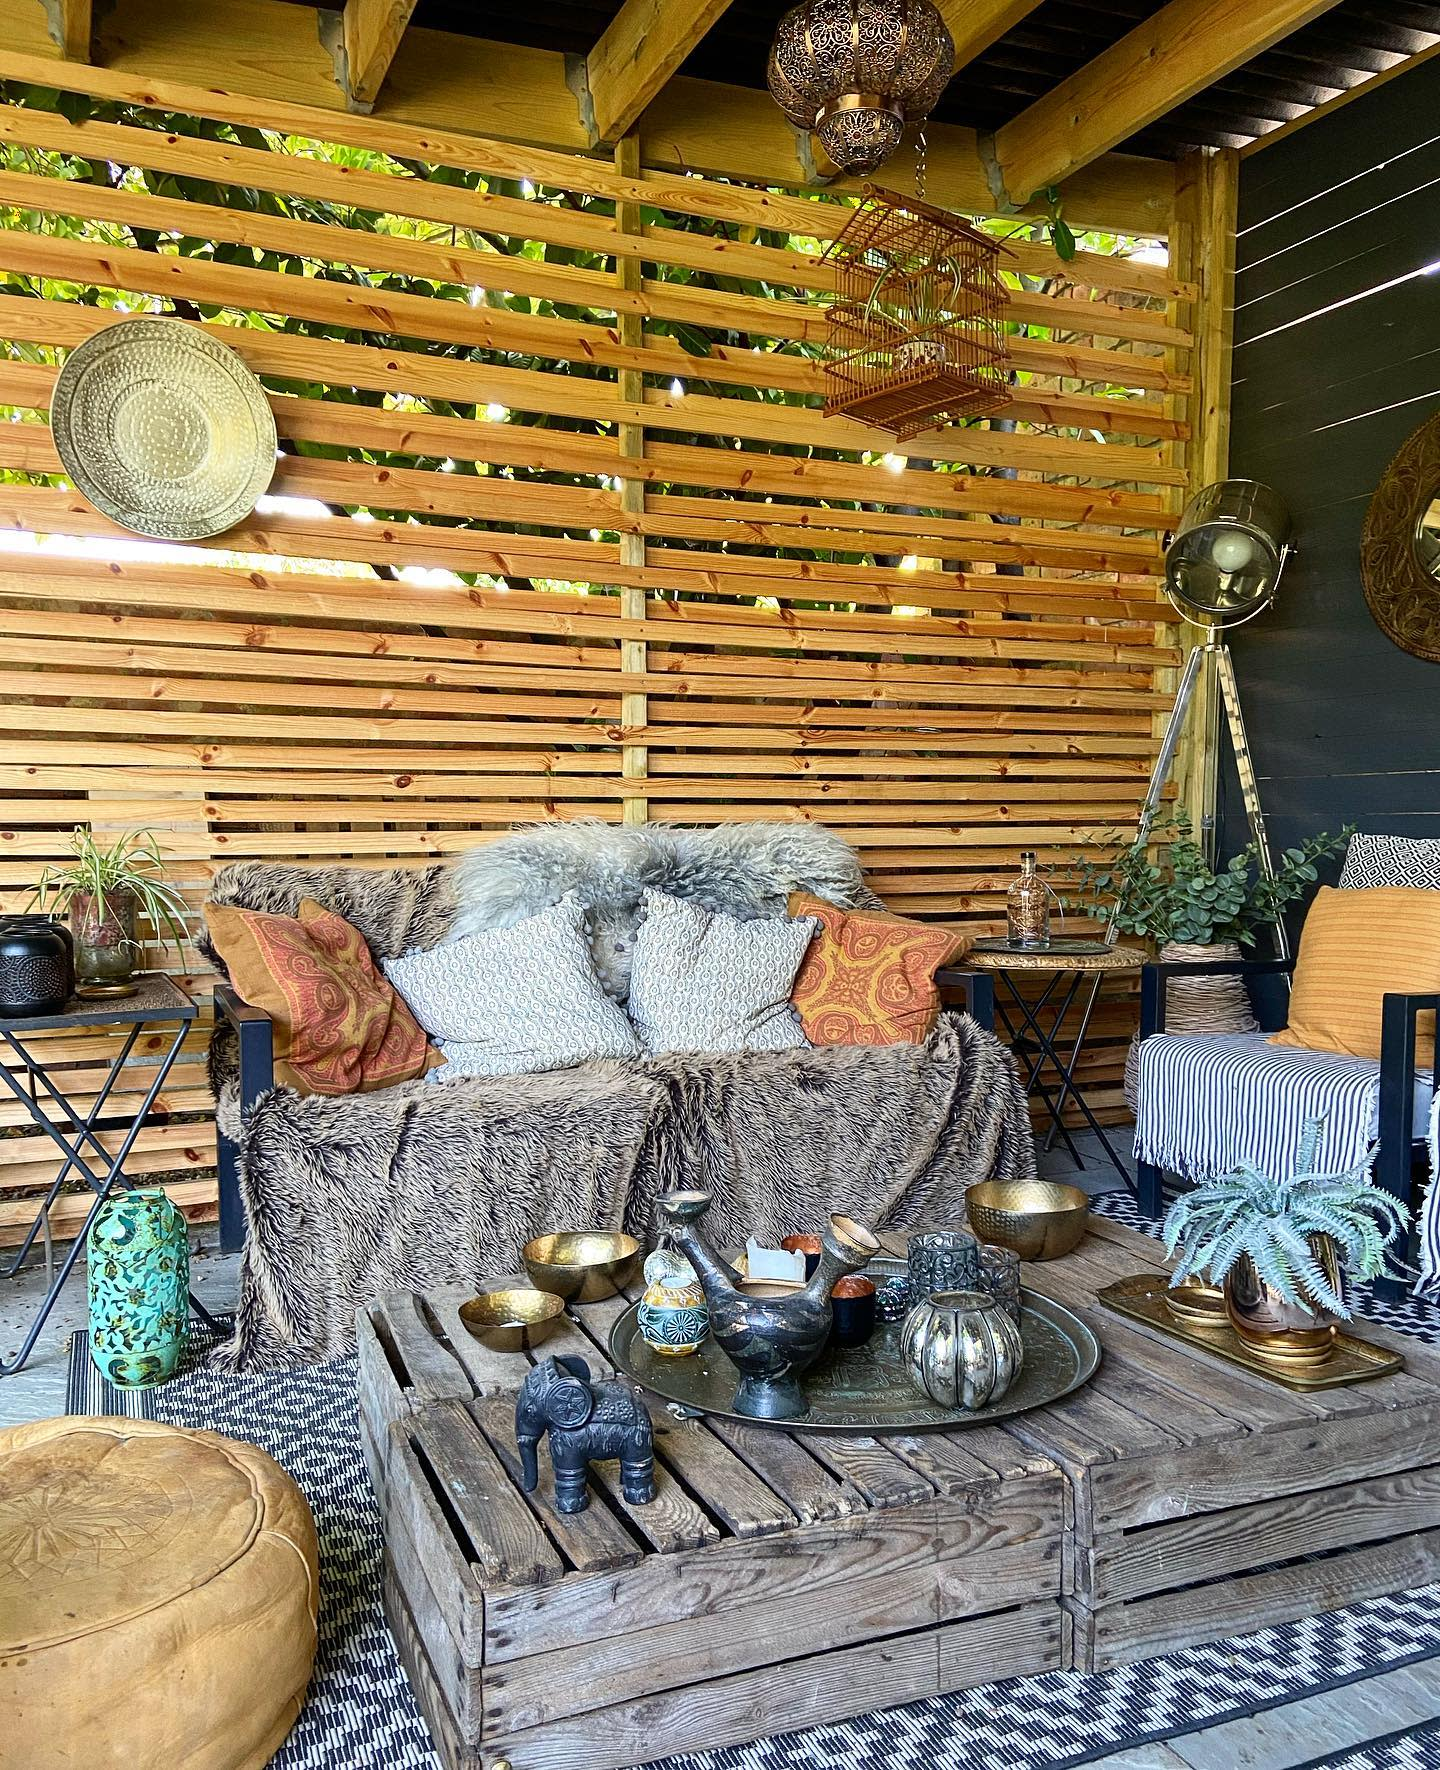 Covered Outdoor Room Ideas -deb_at_no_70